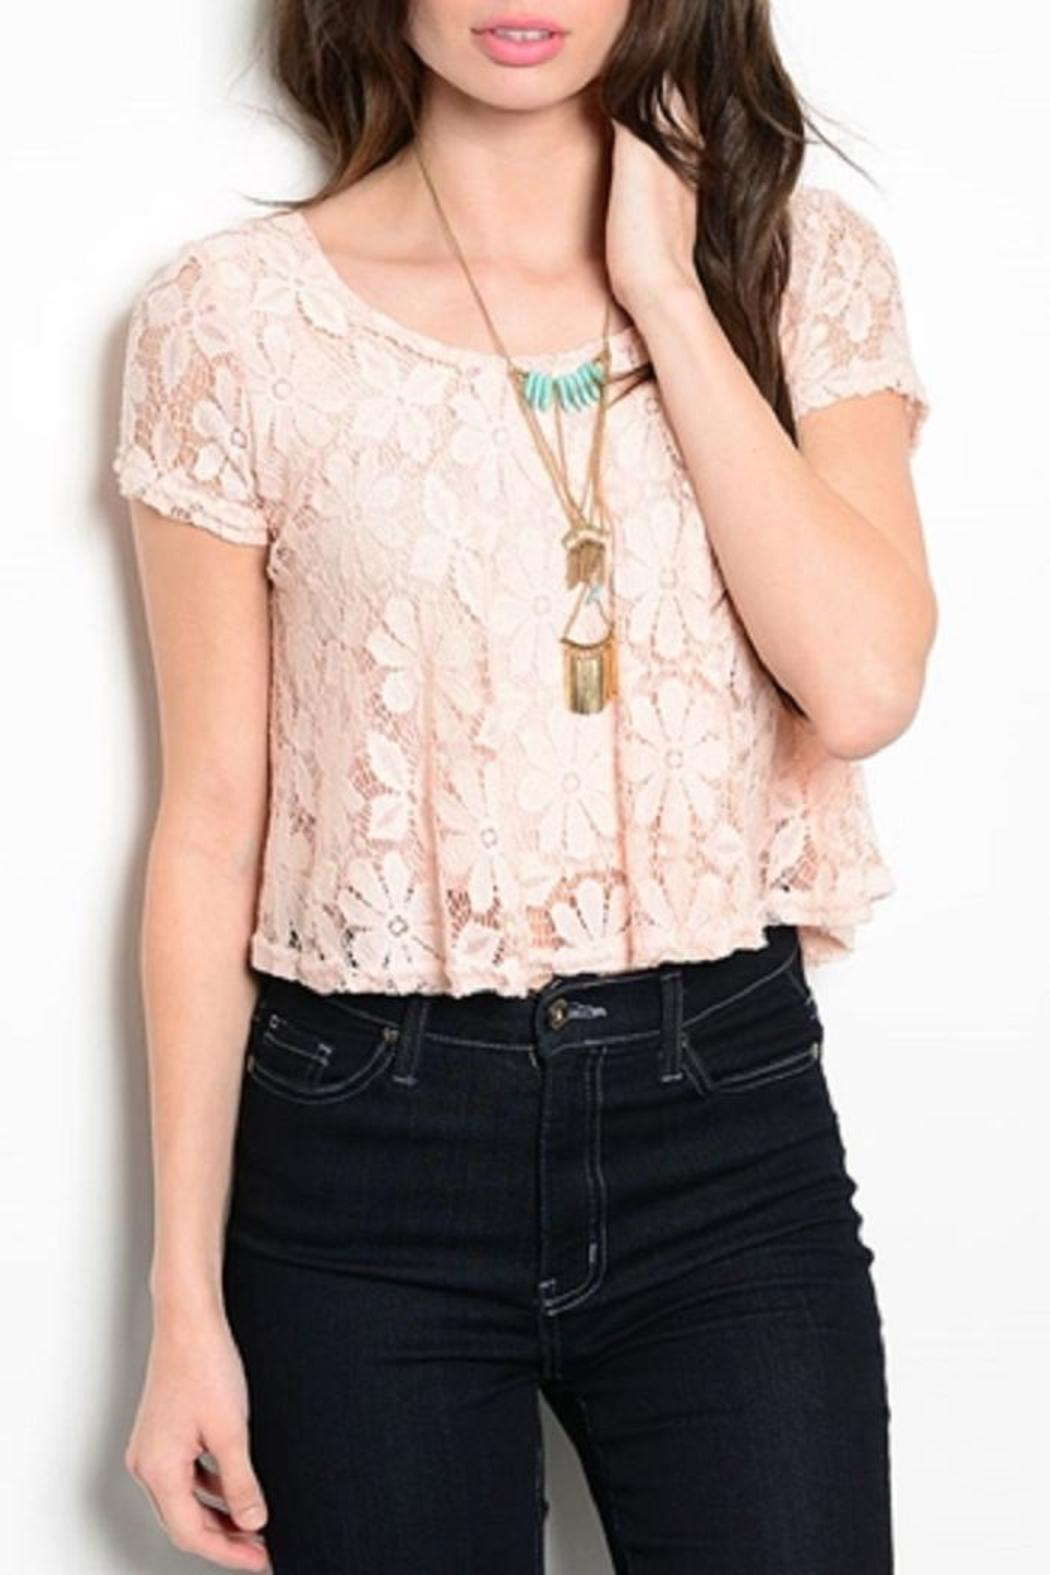 Adore Clothes & More Lined Lace Top - Main Image